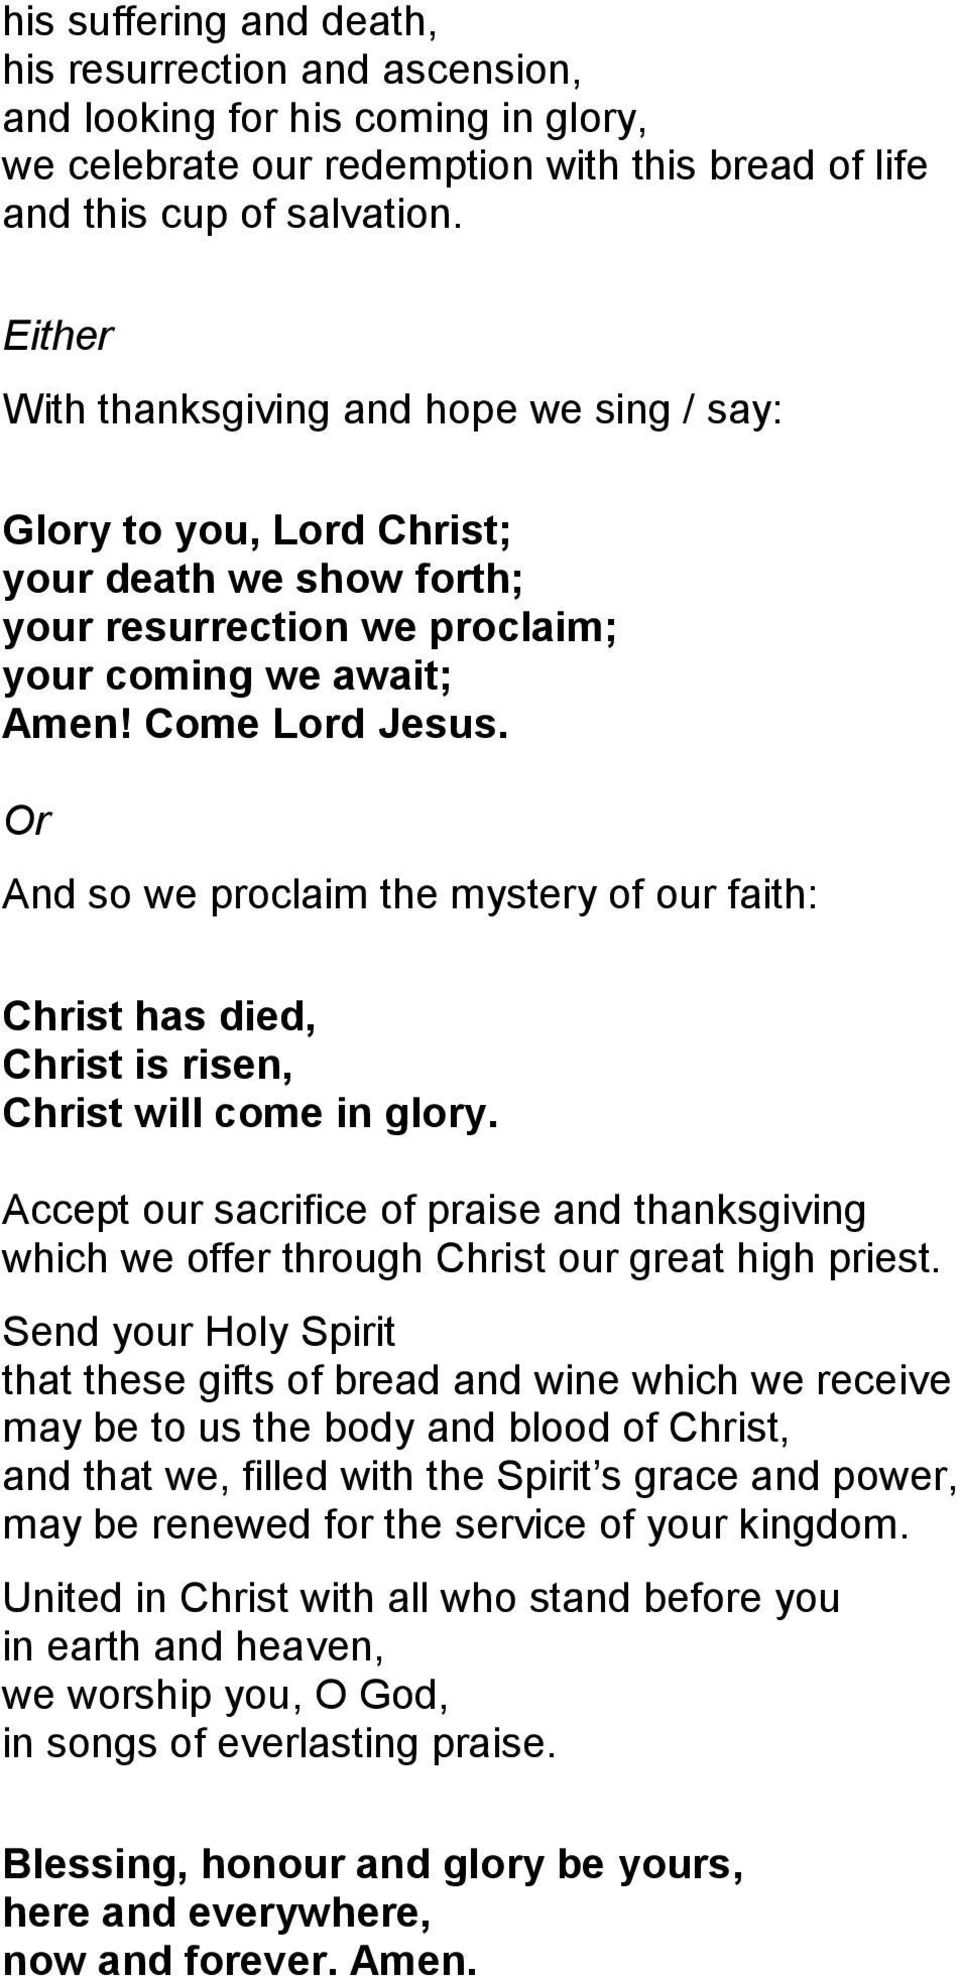 Or And so we proclaim the mystery of our faith: Christ has died, Christ is risen, Christ will come in glory.